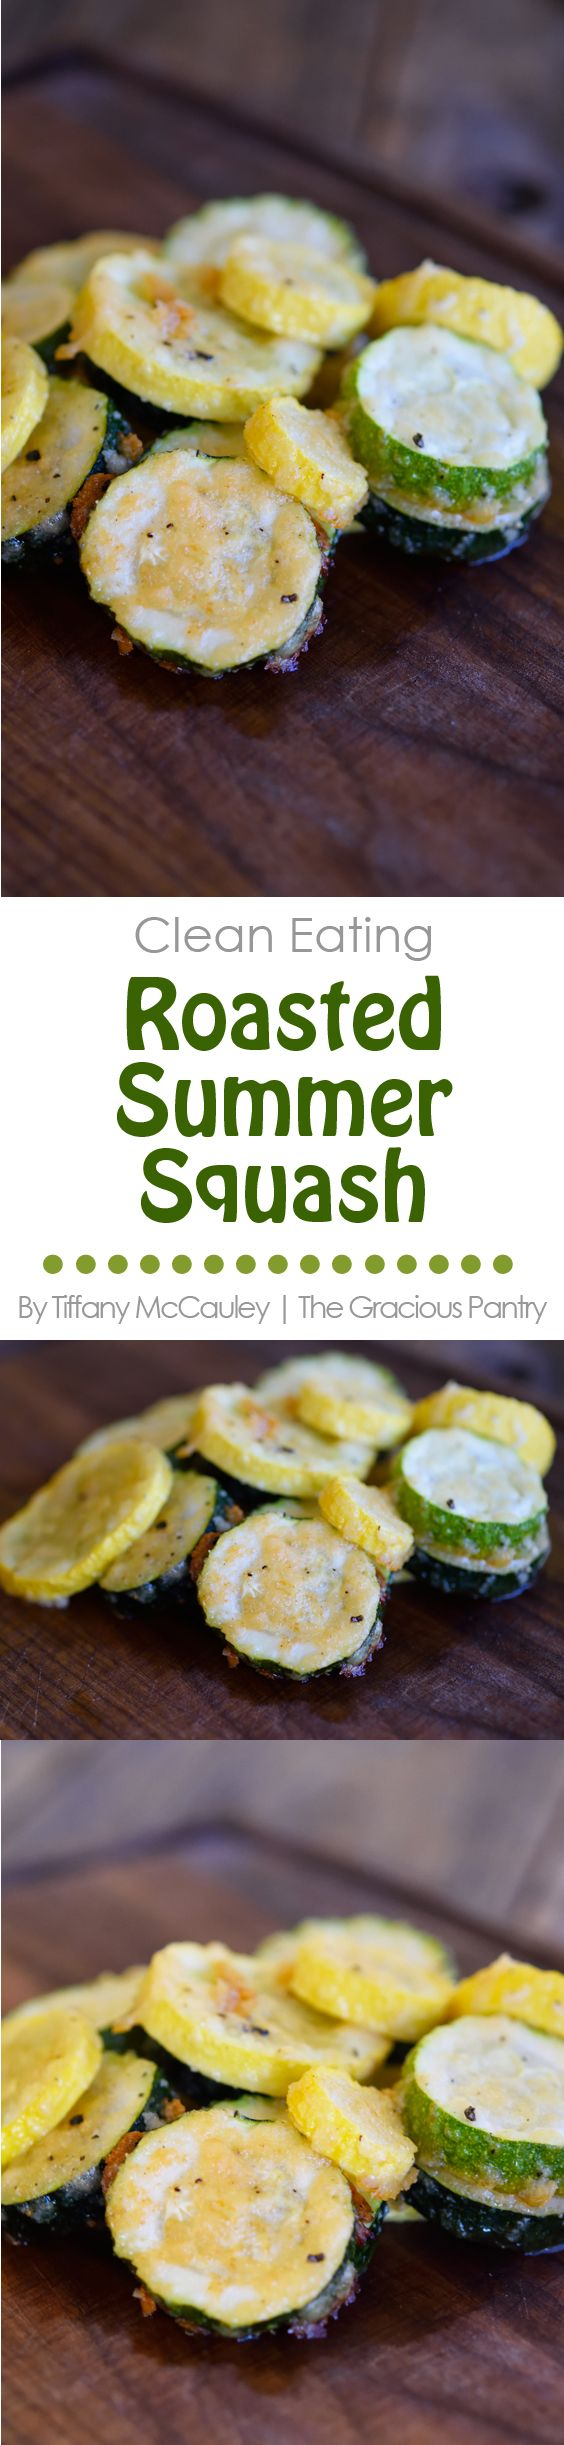 Roasted Summer Squash | Summer Squash Recipes | Healthy Recipes | Clean Eating Recipes